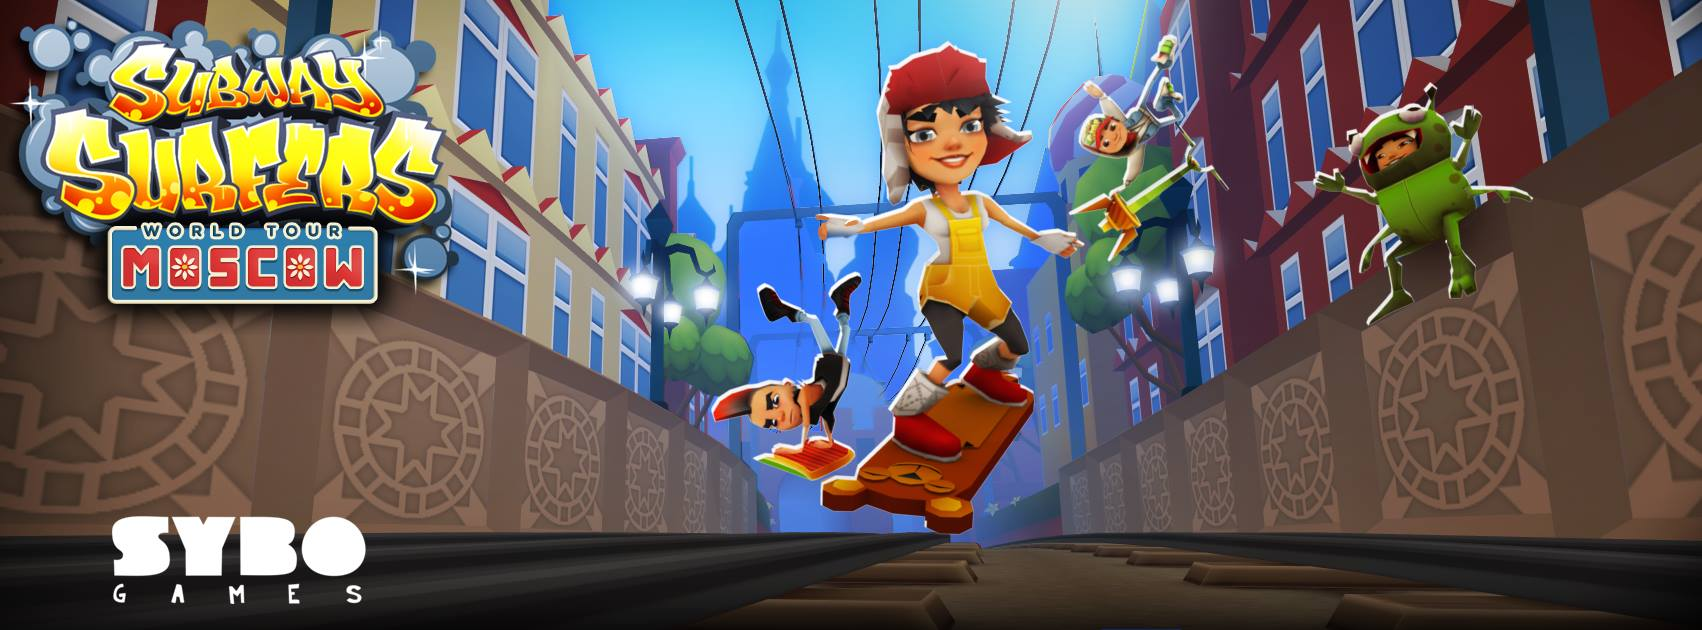 subway surfers world tour moscow update, subway surfers, android games, ios games, techbuzzes.com, techbuzzes, world tour, next update, android, ios, moscow update, after moscow, next update after moscow,